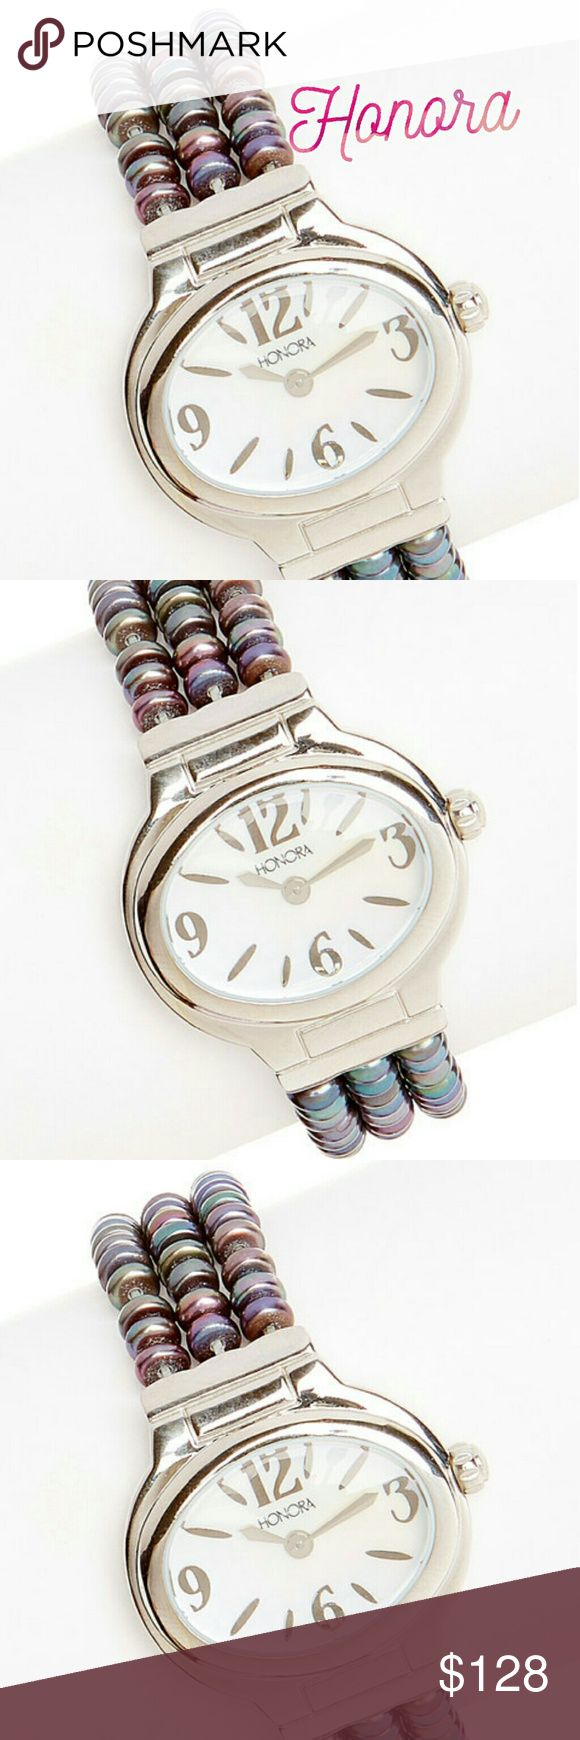 HONORA WATCH Pearl and stainless steel stretch watch multiple colors elegance and comfort in this shimmering watch. It's stretchy bracelet is composed entirely of freshwater pearls for a sophisticated and comfortable all day  Includes watch box Case 1.25w ? 1.5 like Bracelet 0.75w ? 7 long Stretch  Case is stainless steel  Face mother of pearl  Analog display  Cultured freshwater pearls  Push pull crown Honora Accessories Watches